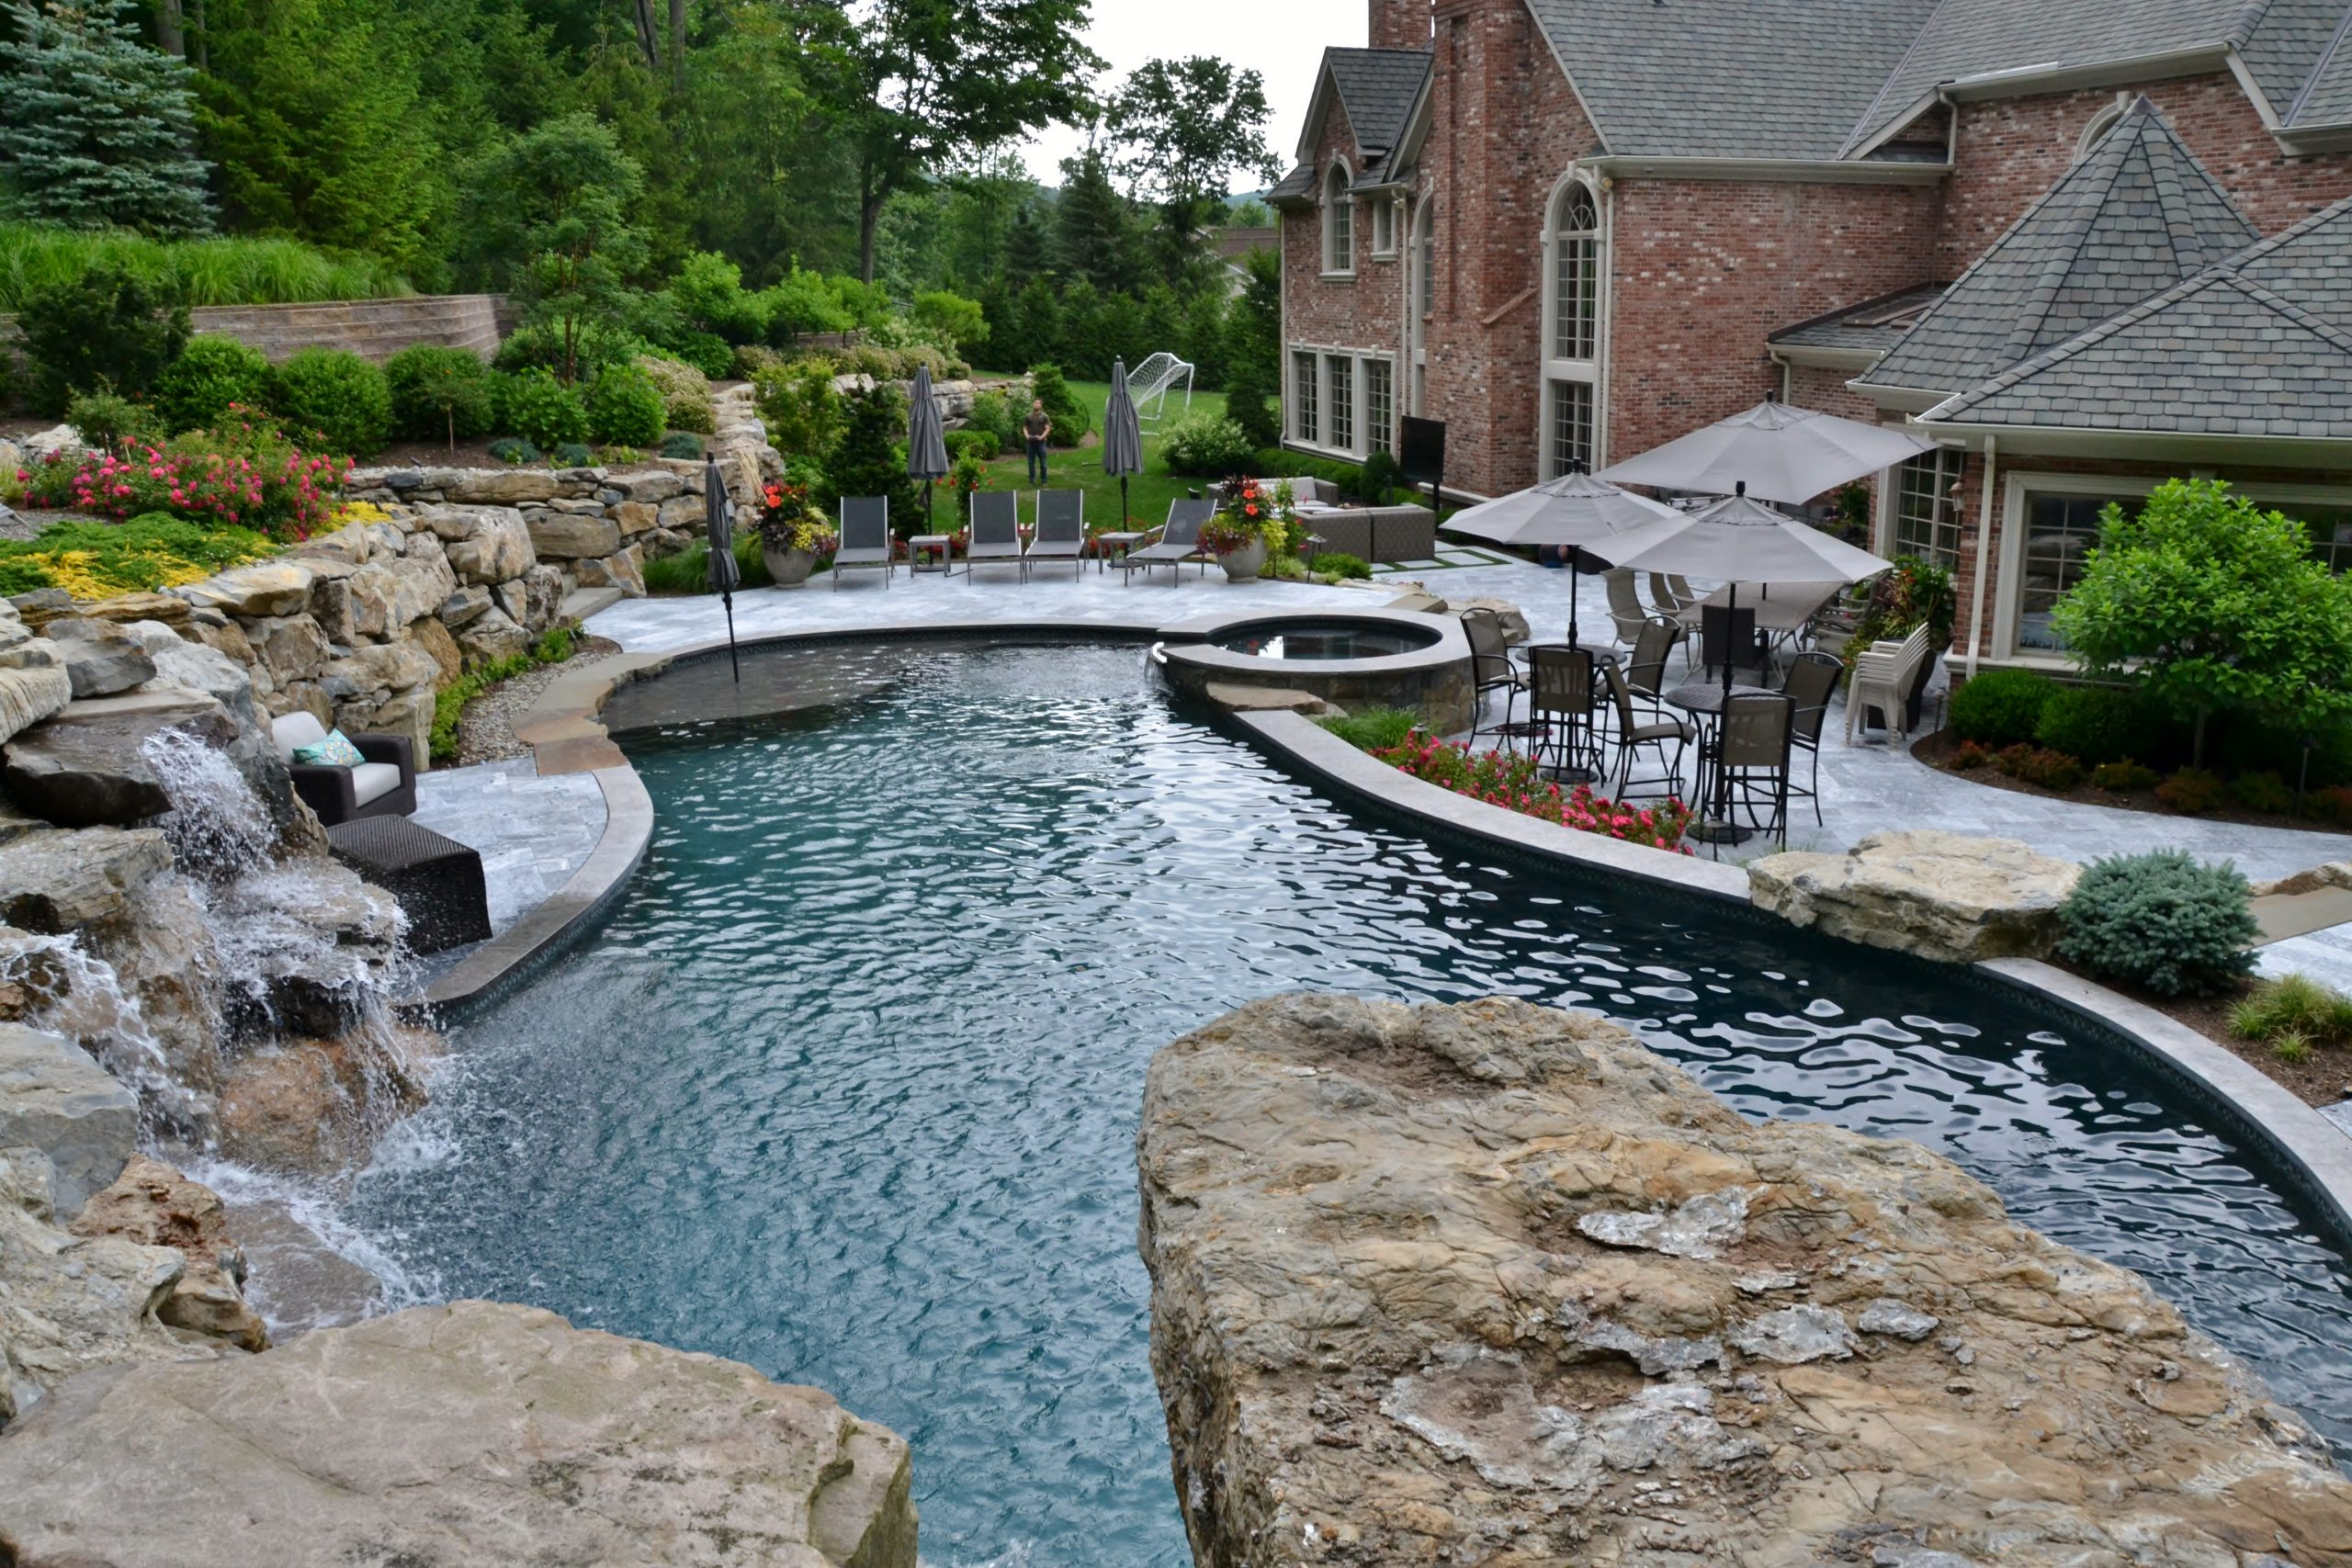 Natural Pools with waterfall and hottub